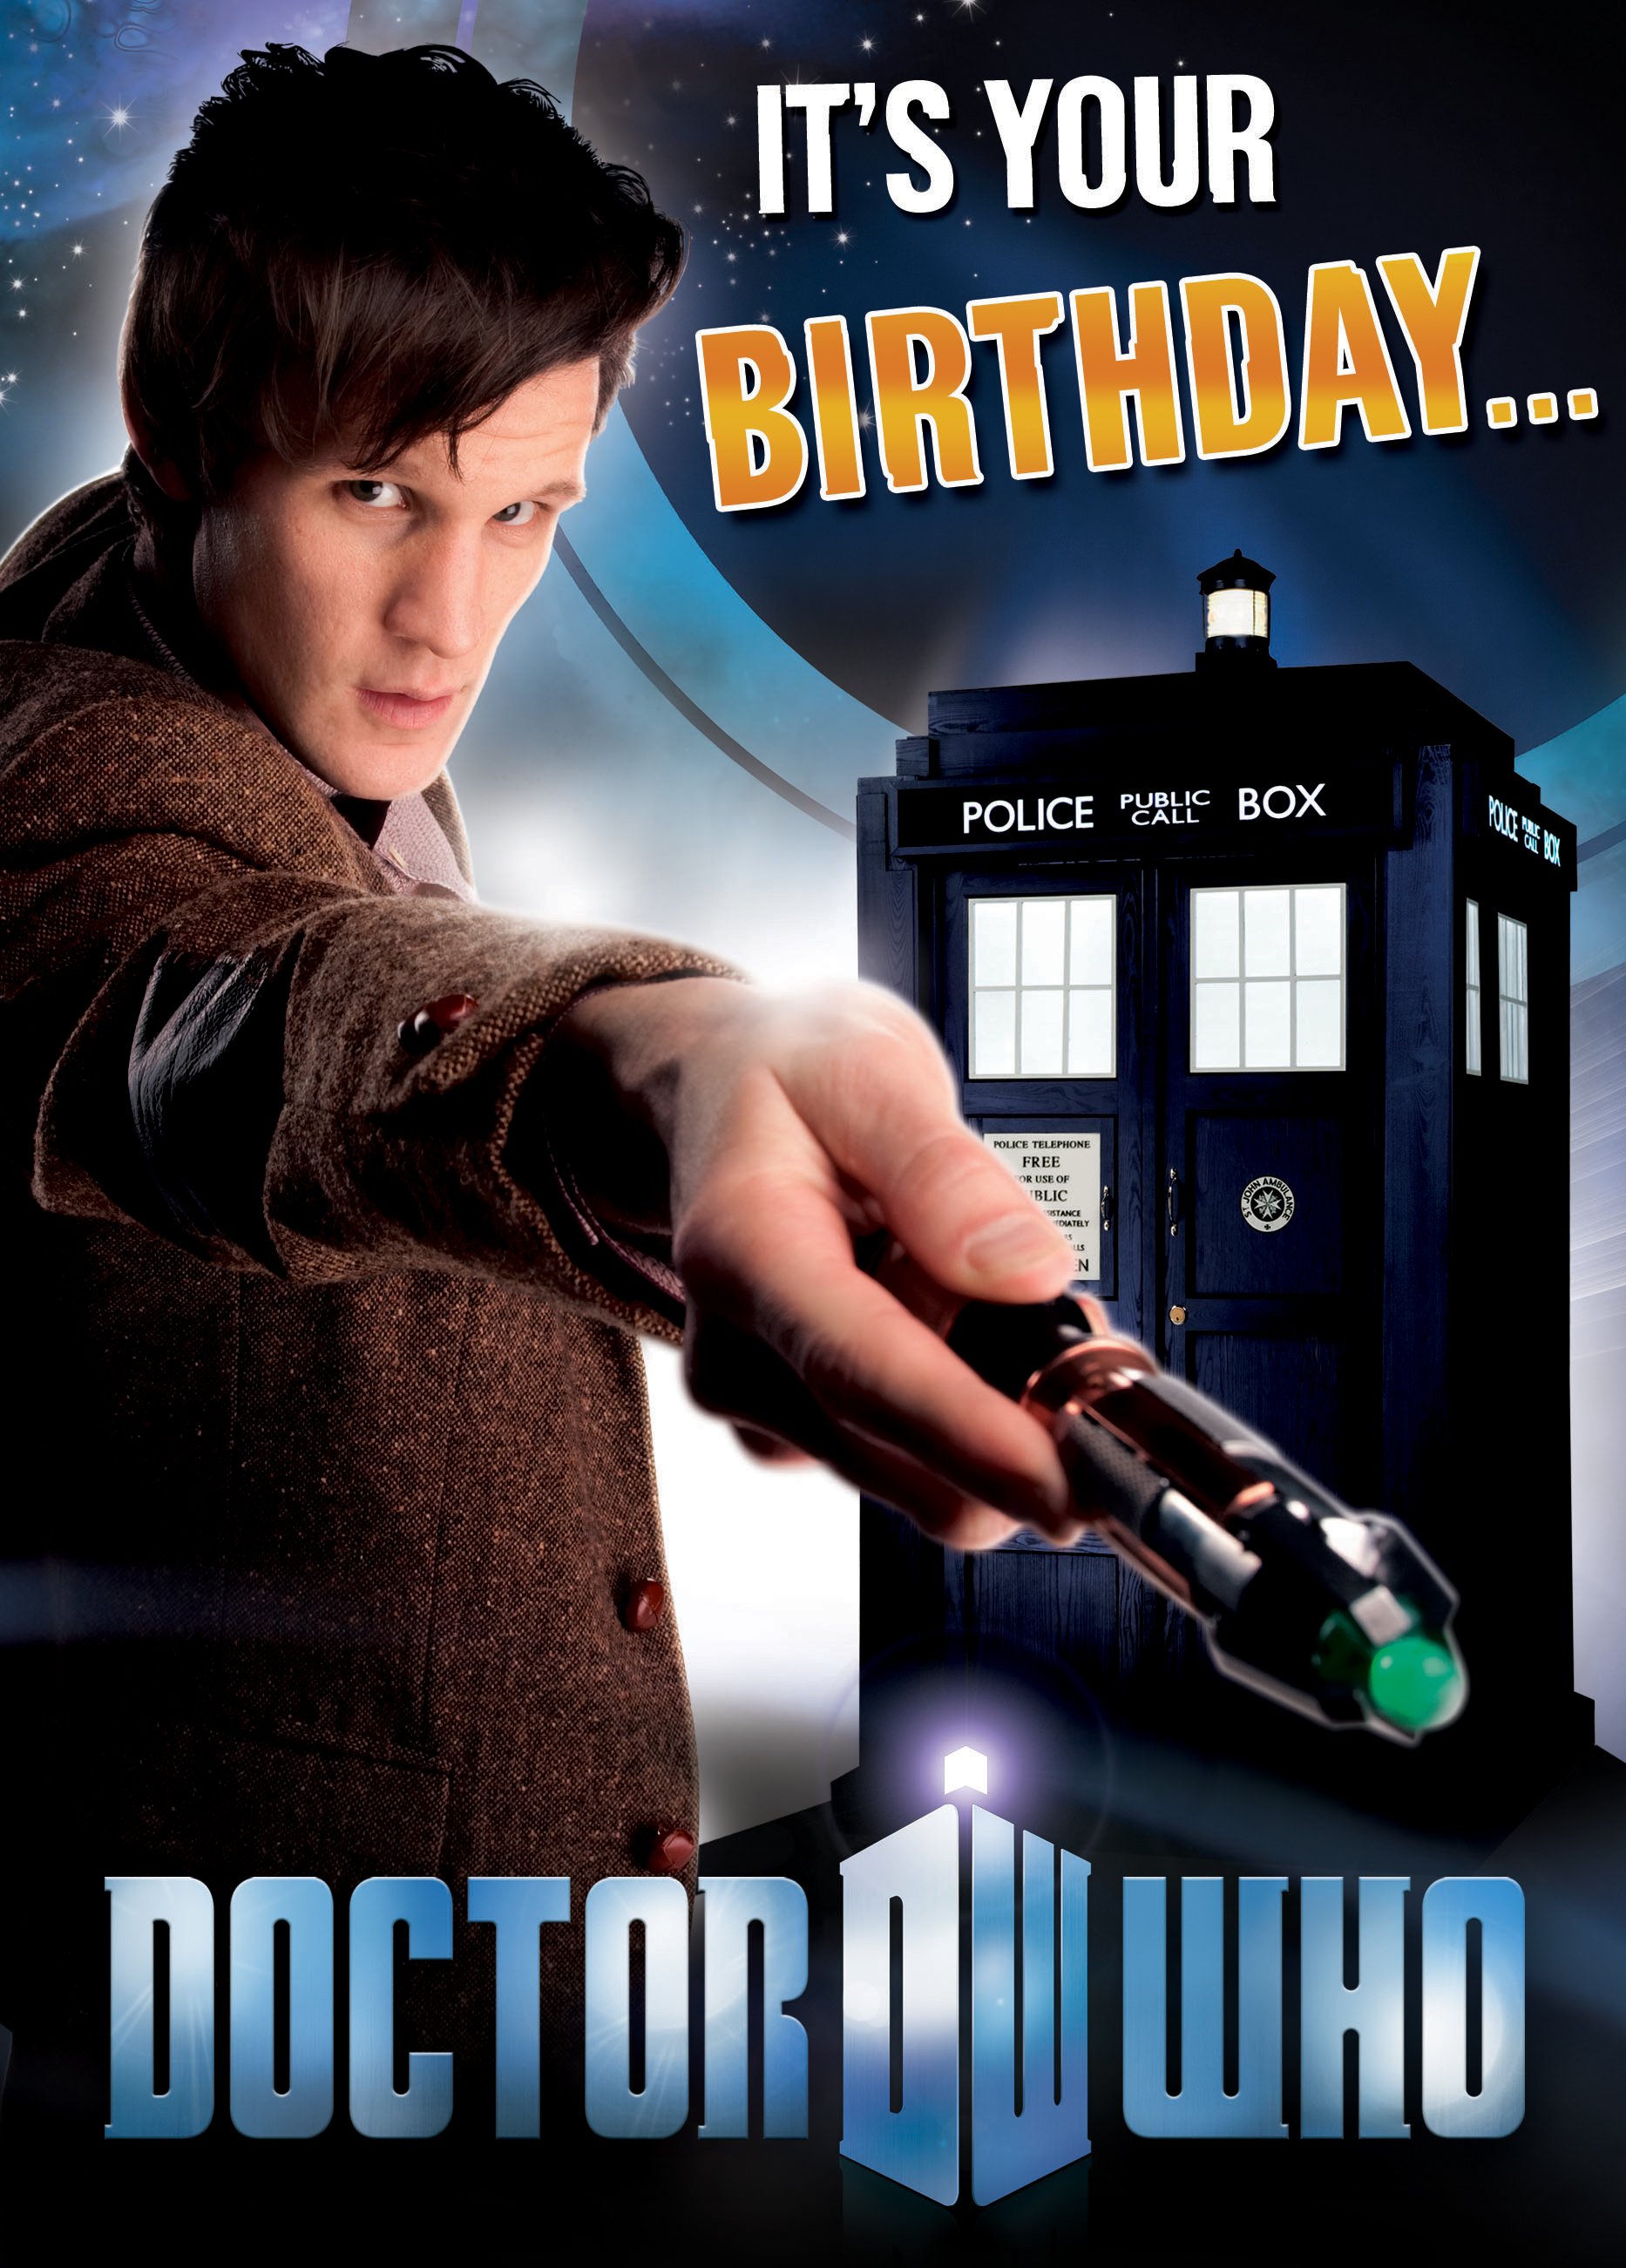 Doctor Who Birthday Card Its Your Birthday Sound FX Card – Dr Who Birthday Card